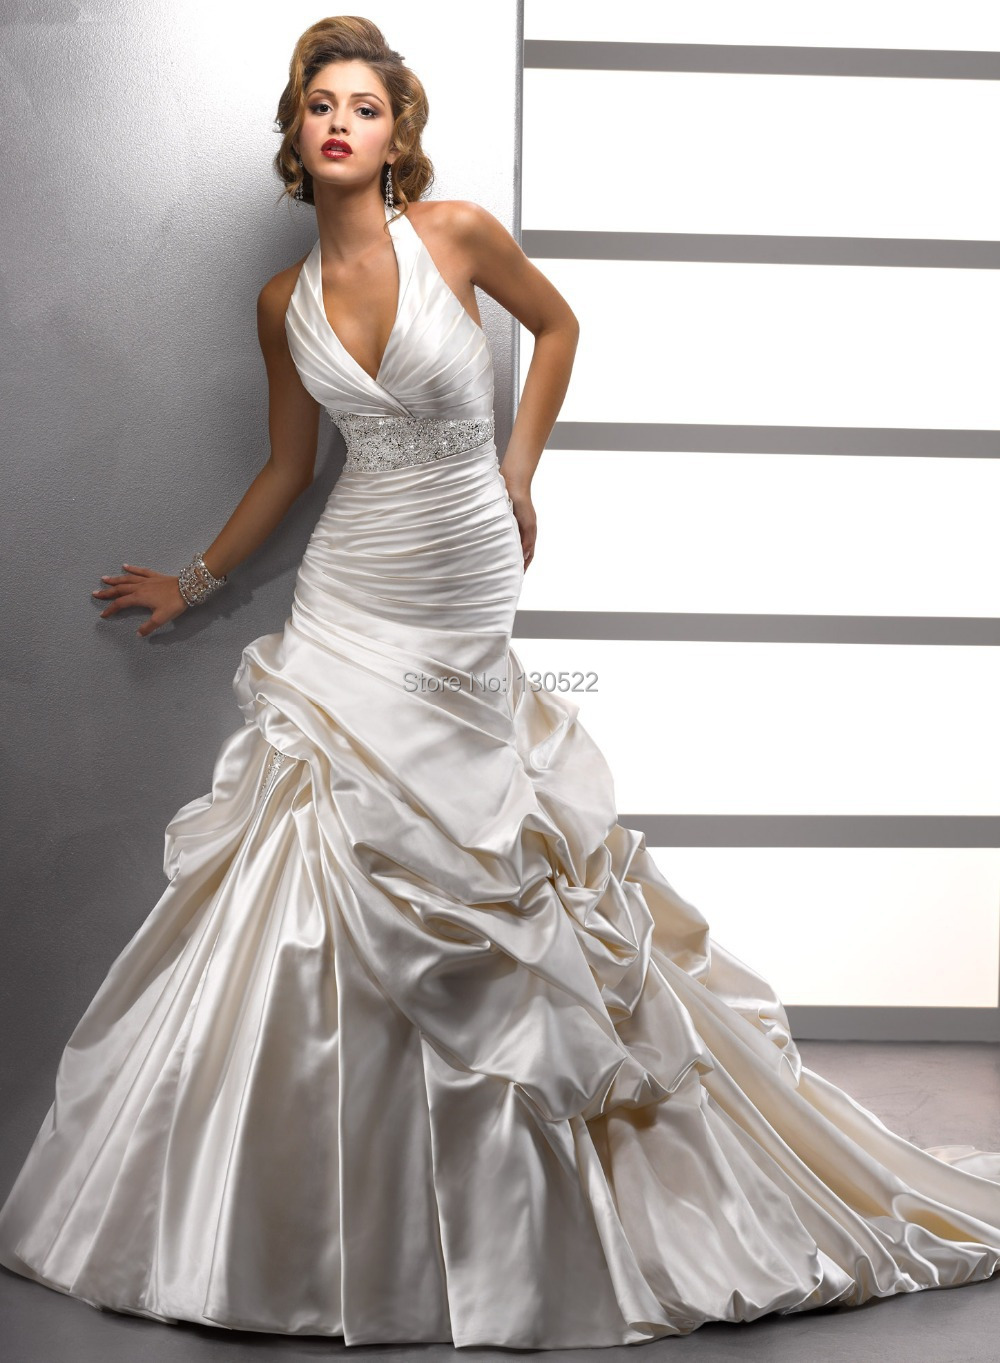 Design your own wedding dress cocktail dresses 2016 for Design ur own wedding dress